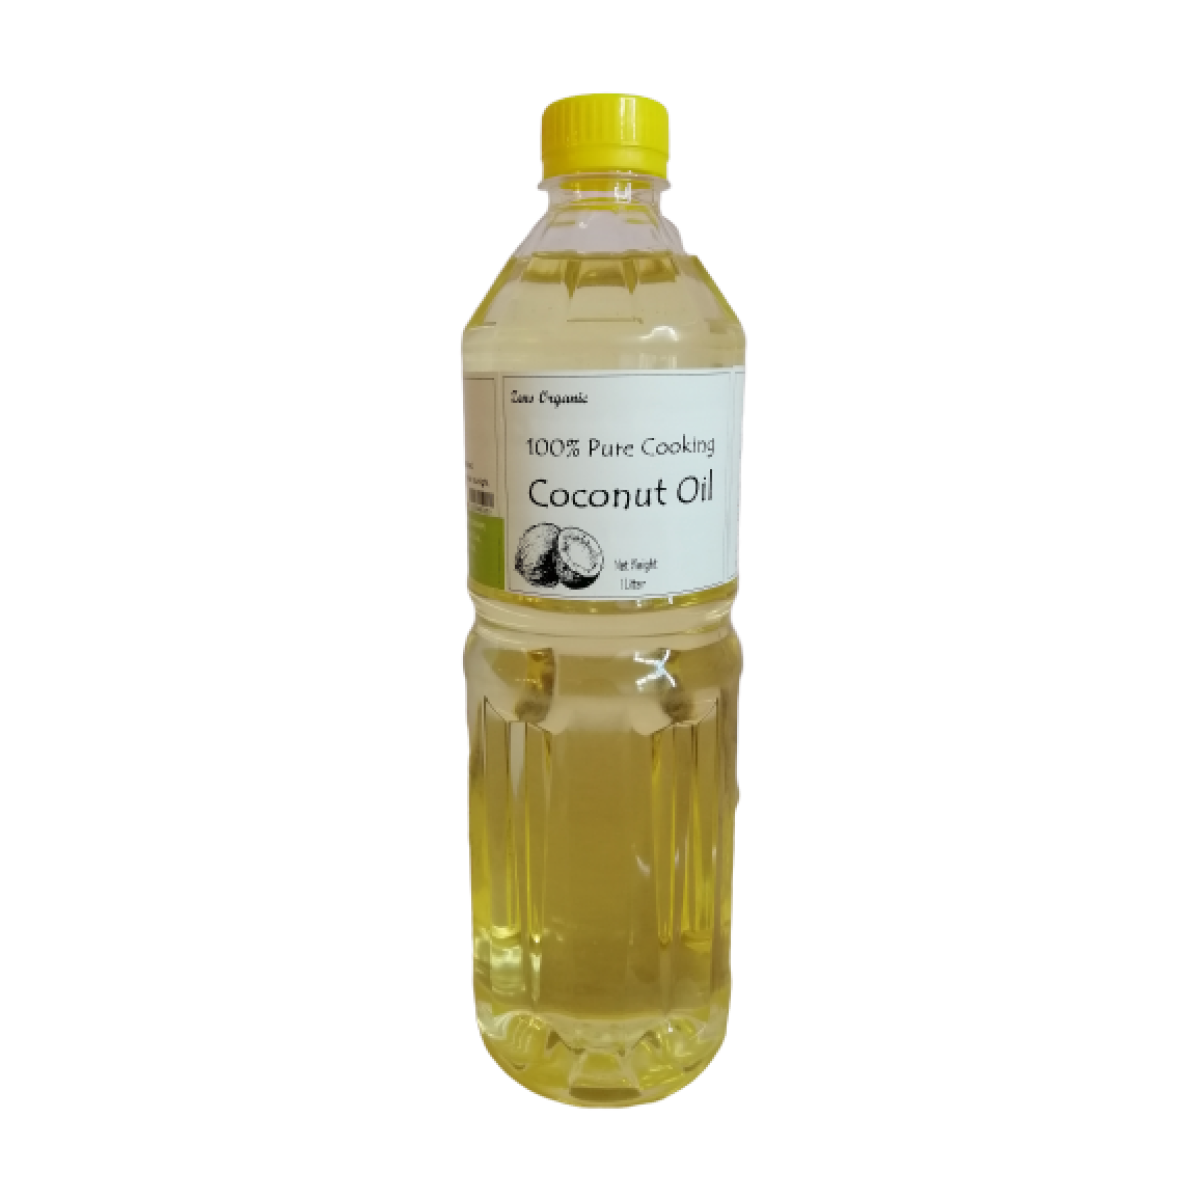 Zens Organic 100% Pure Cooking Coconut Oil 1L